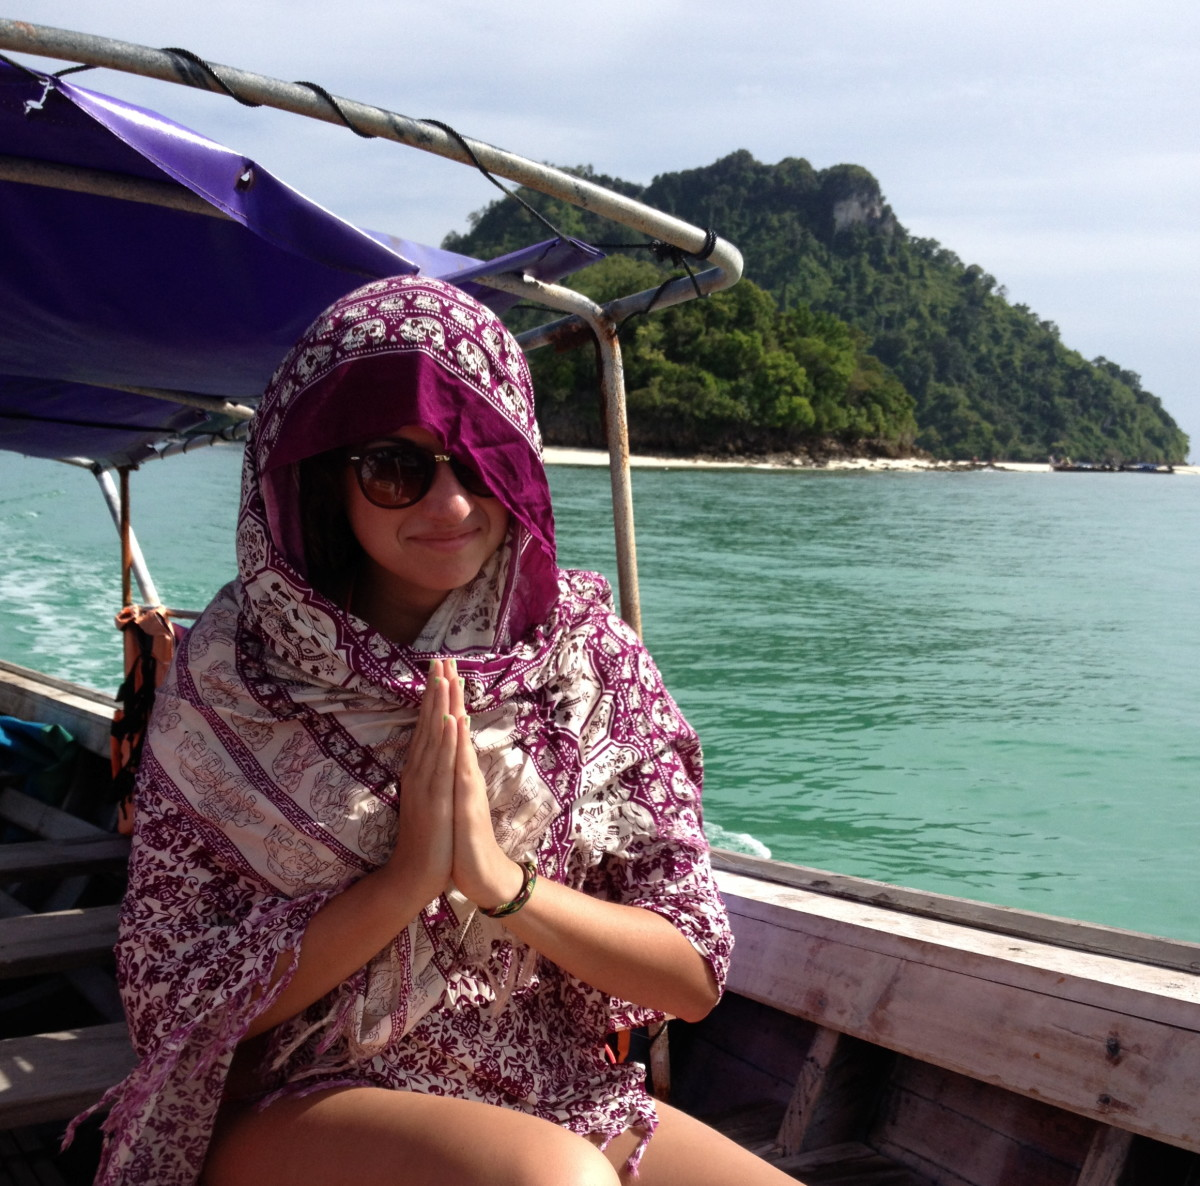 Staying covered up in a taxi boat from Chicken Island back to Krabi after a day in the sun.